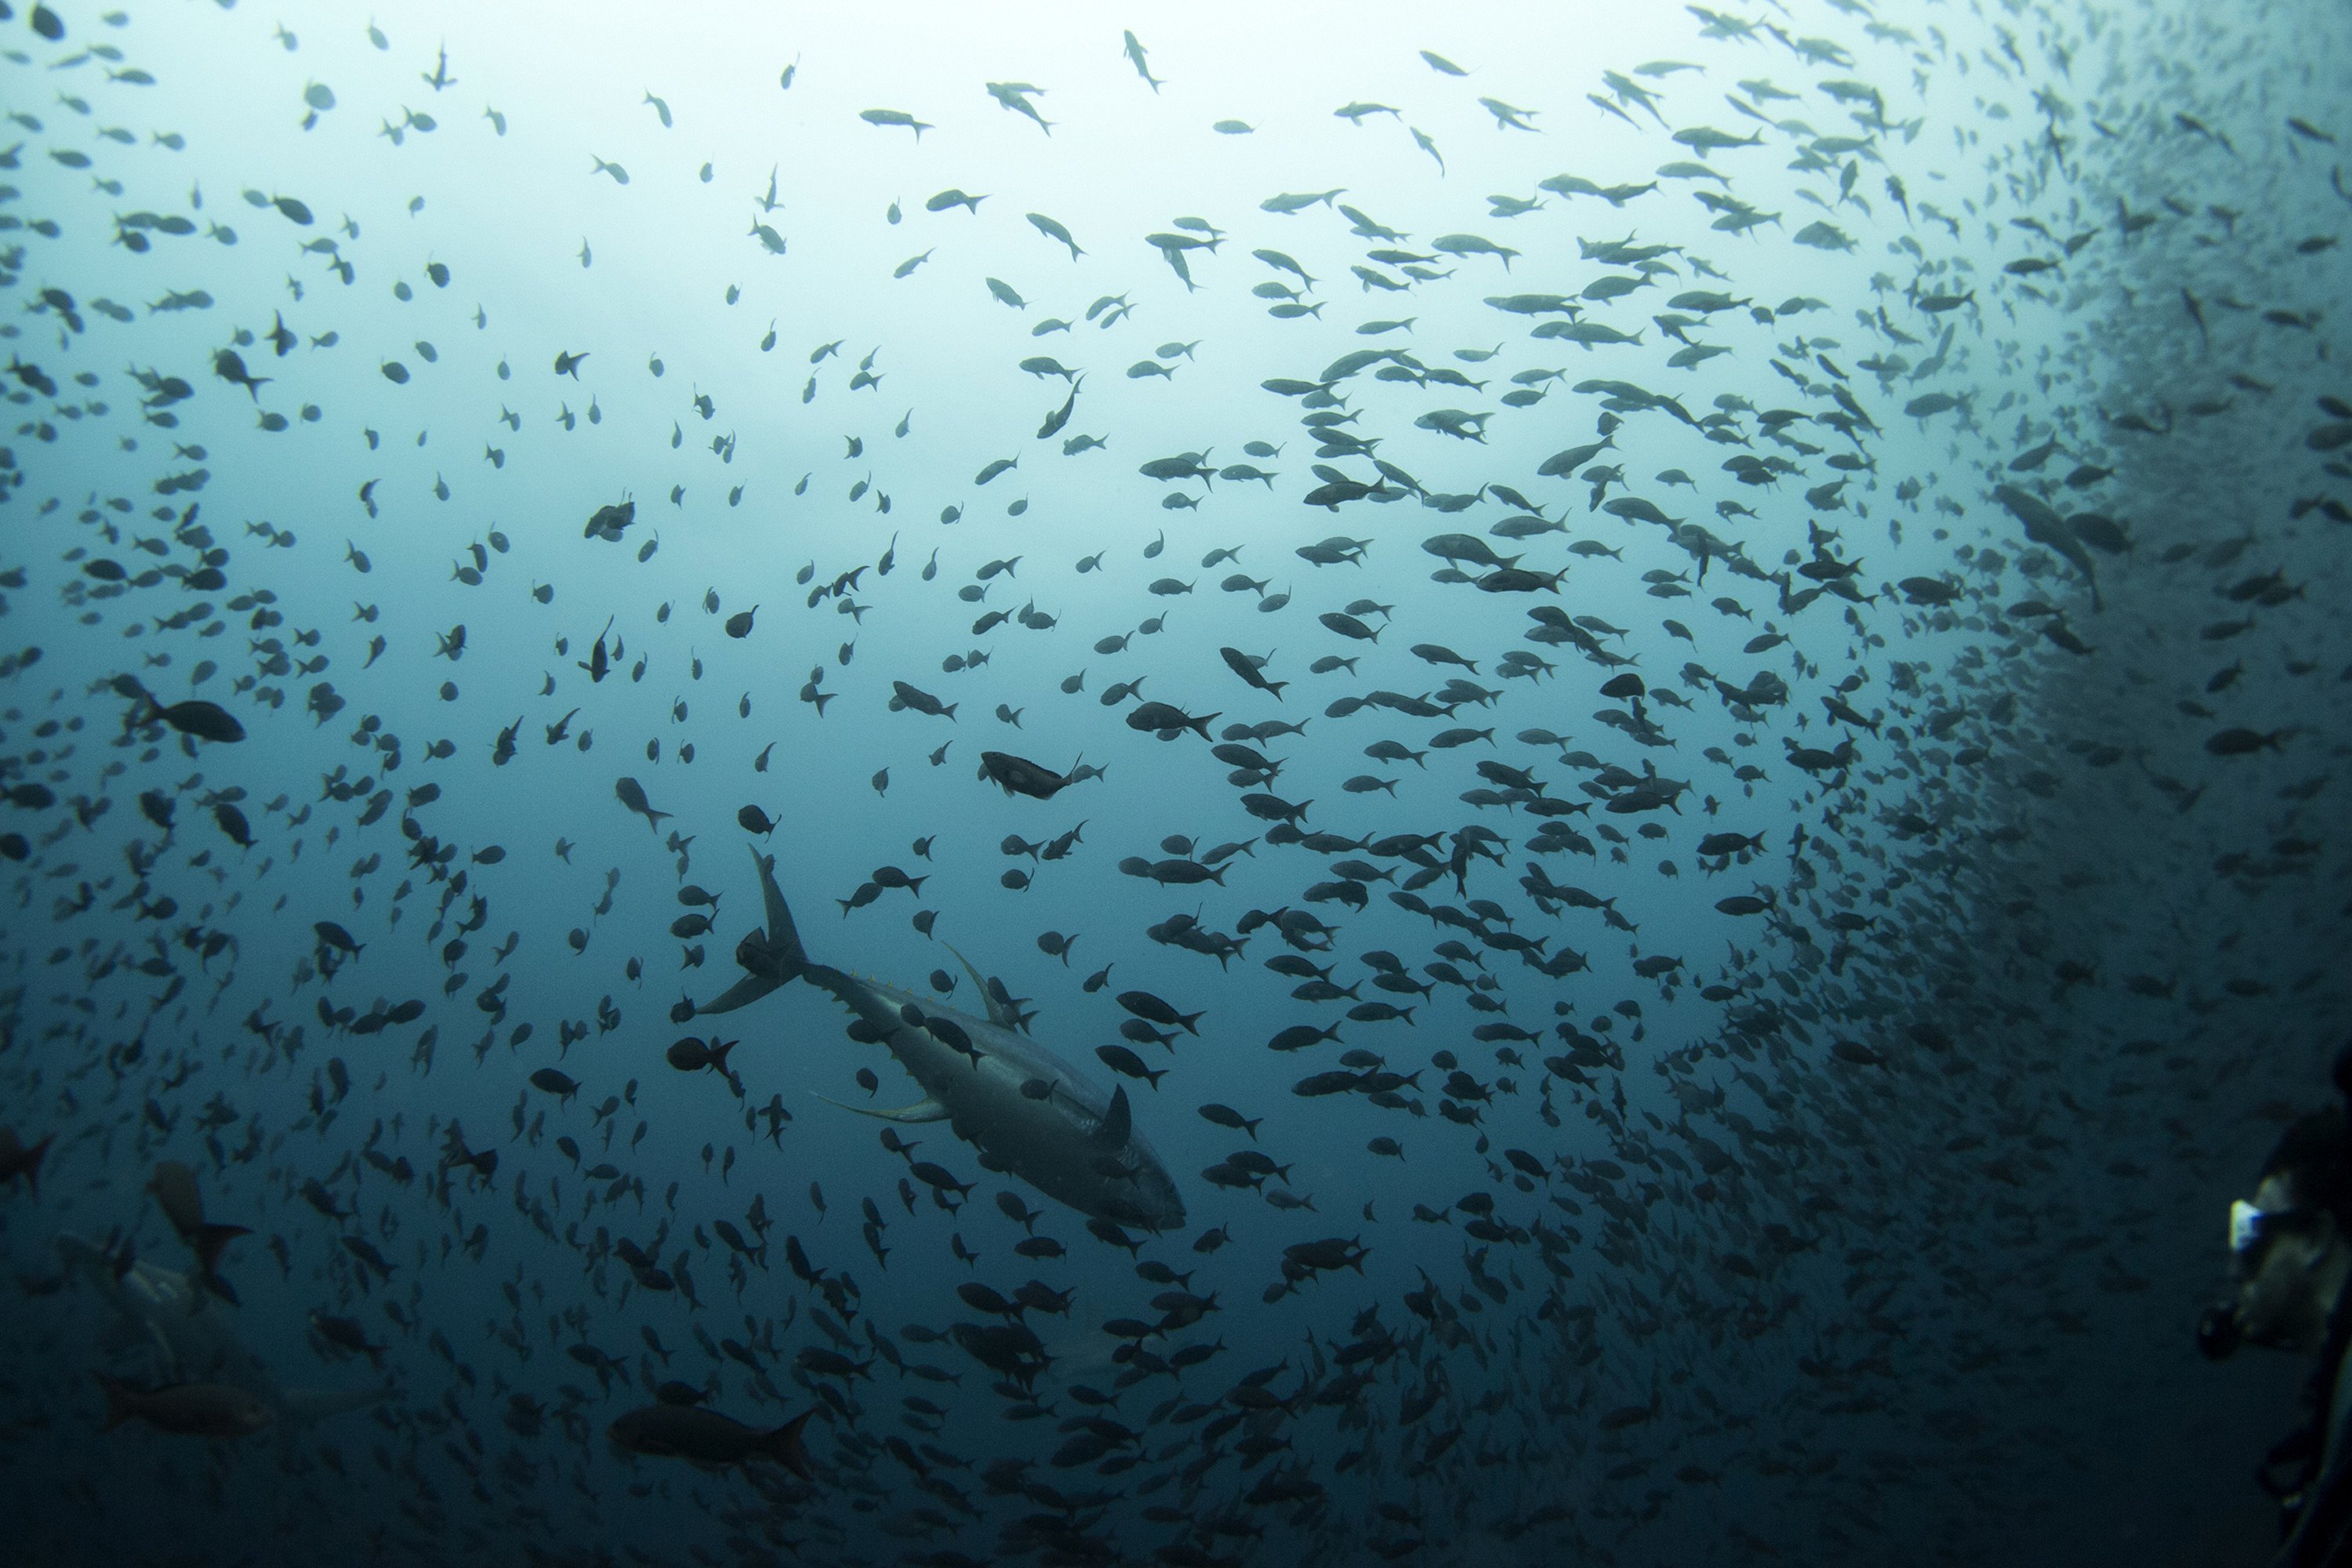 A-tuna-species-swimming-among-a-school-of-fish-as-a-scuba-diver-looks-on-at-Galapagos-Marine-Reserve